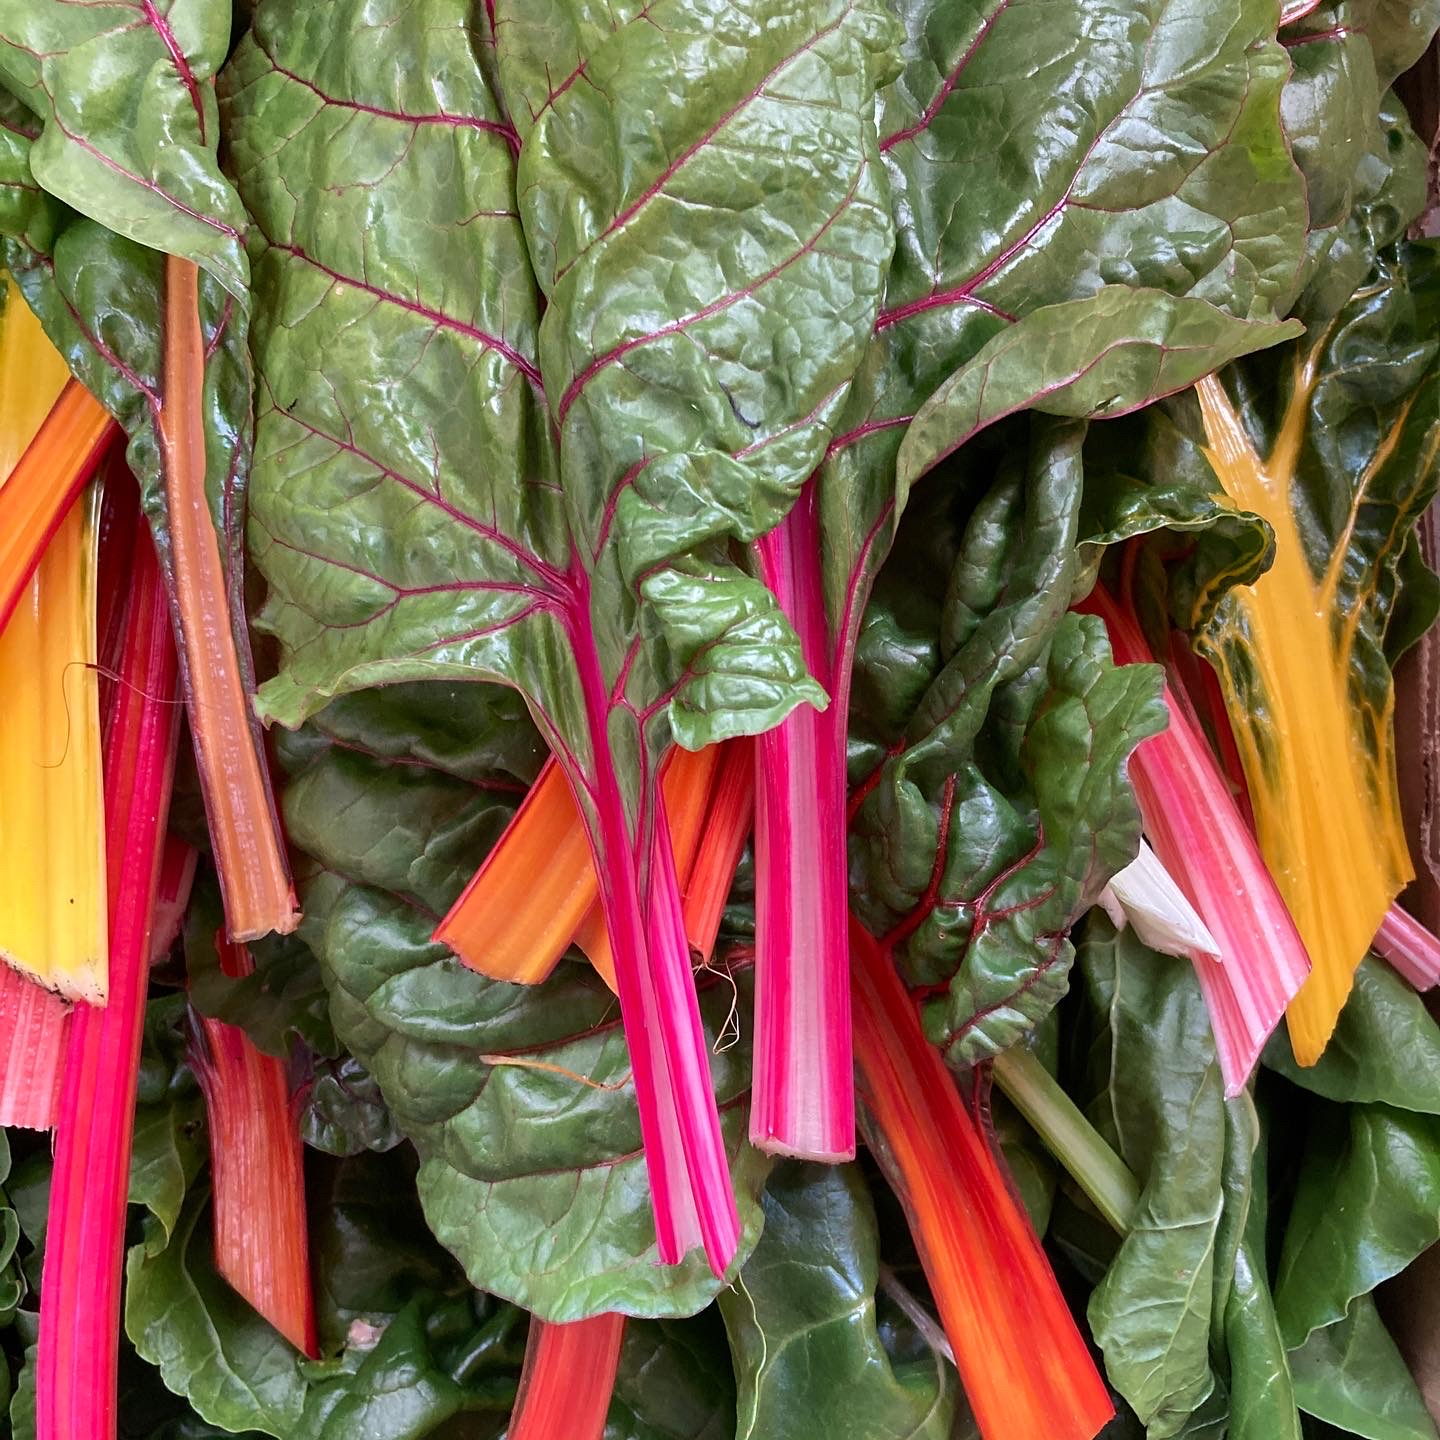 Fanfield Farm Chard